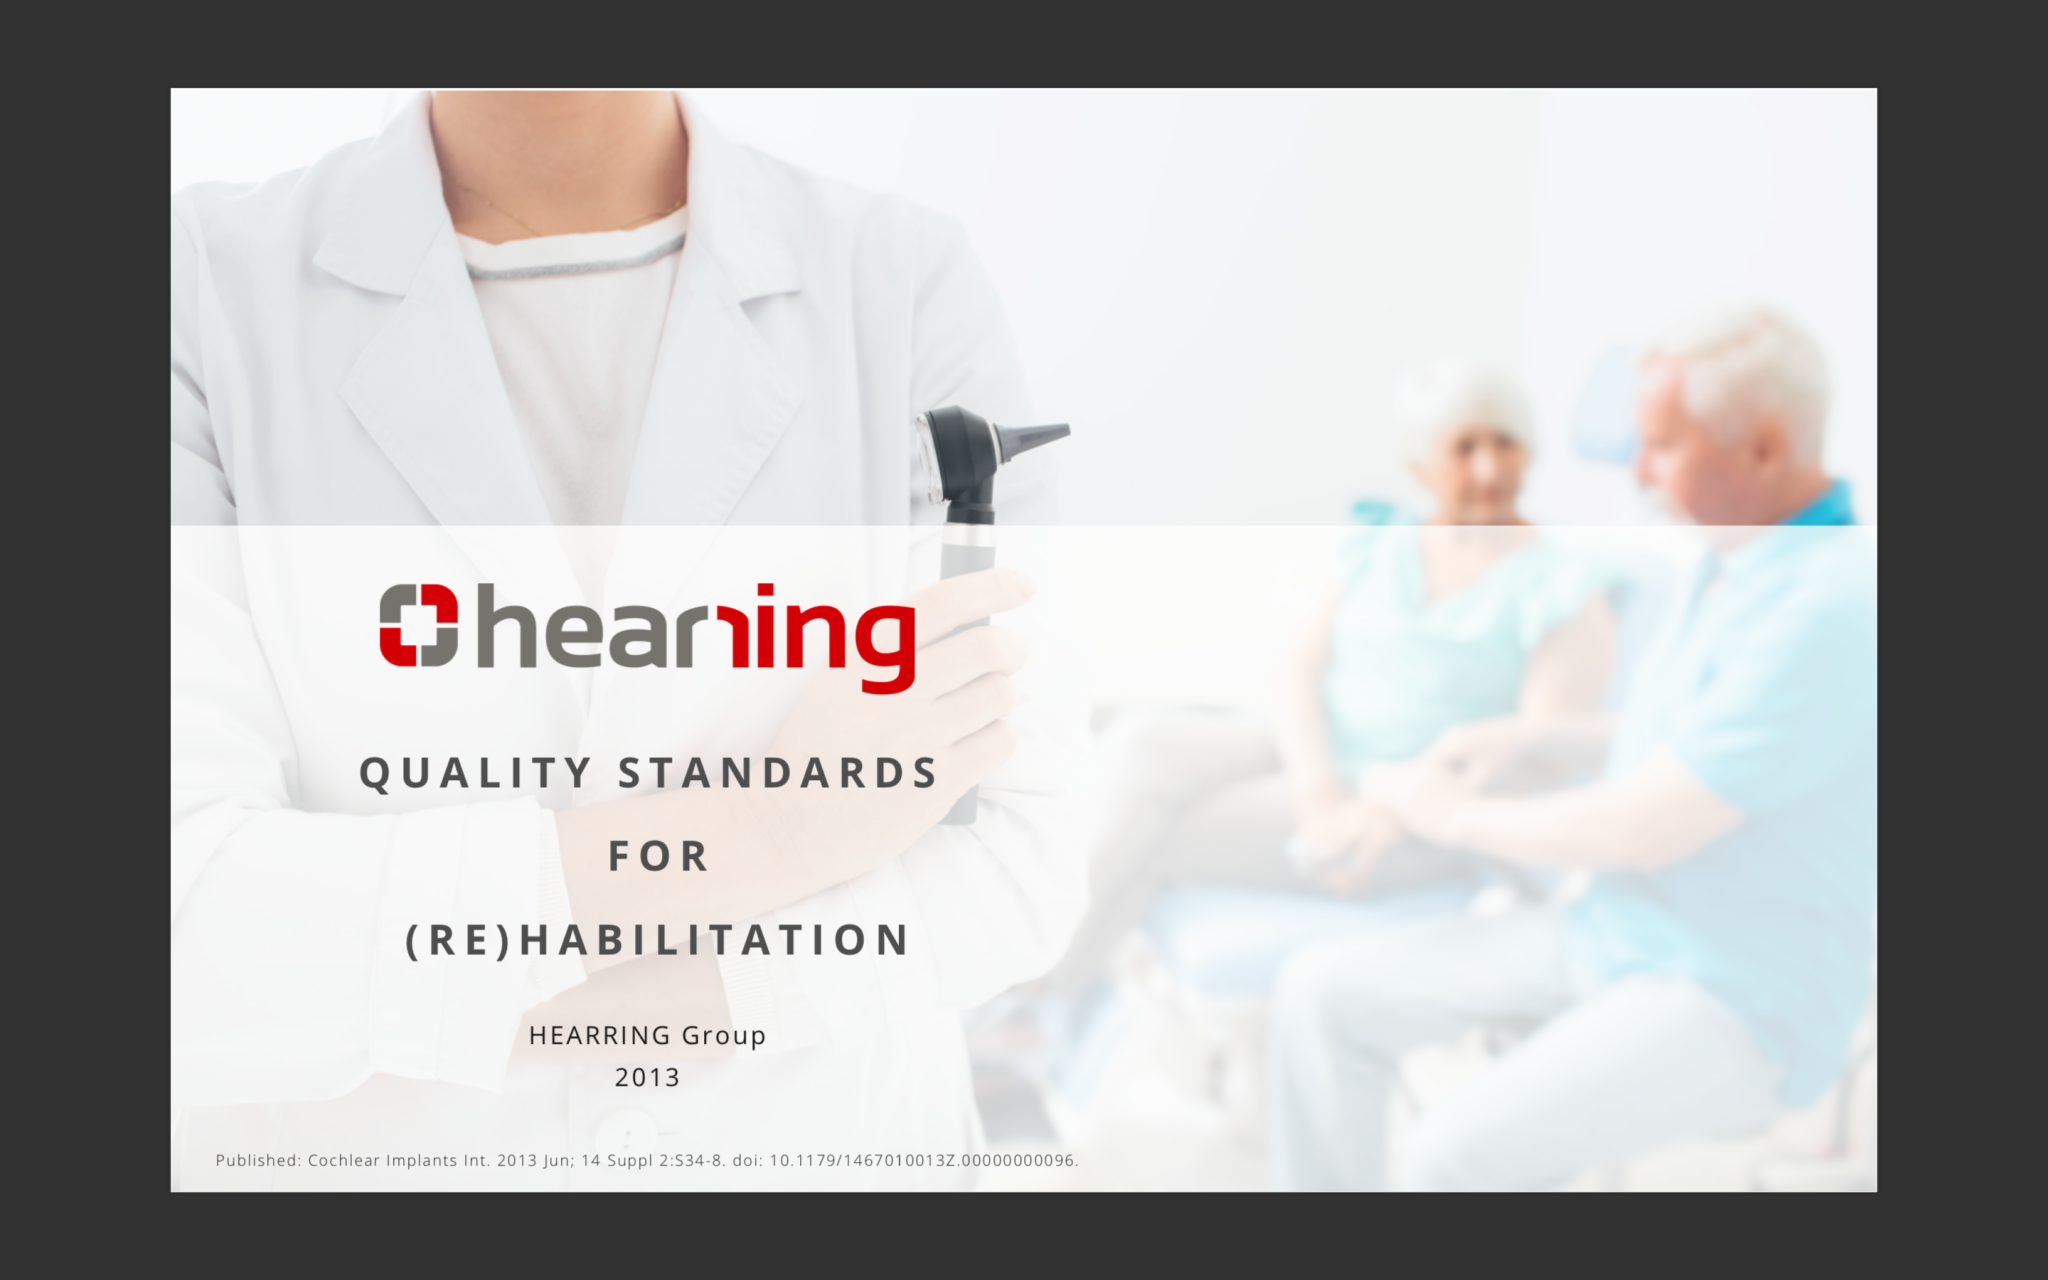 Rehabilitation Quality Standards Hearring